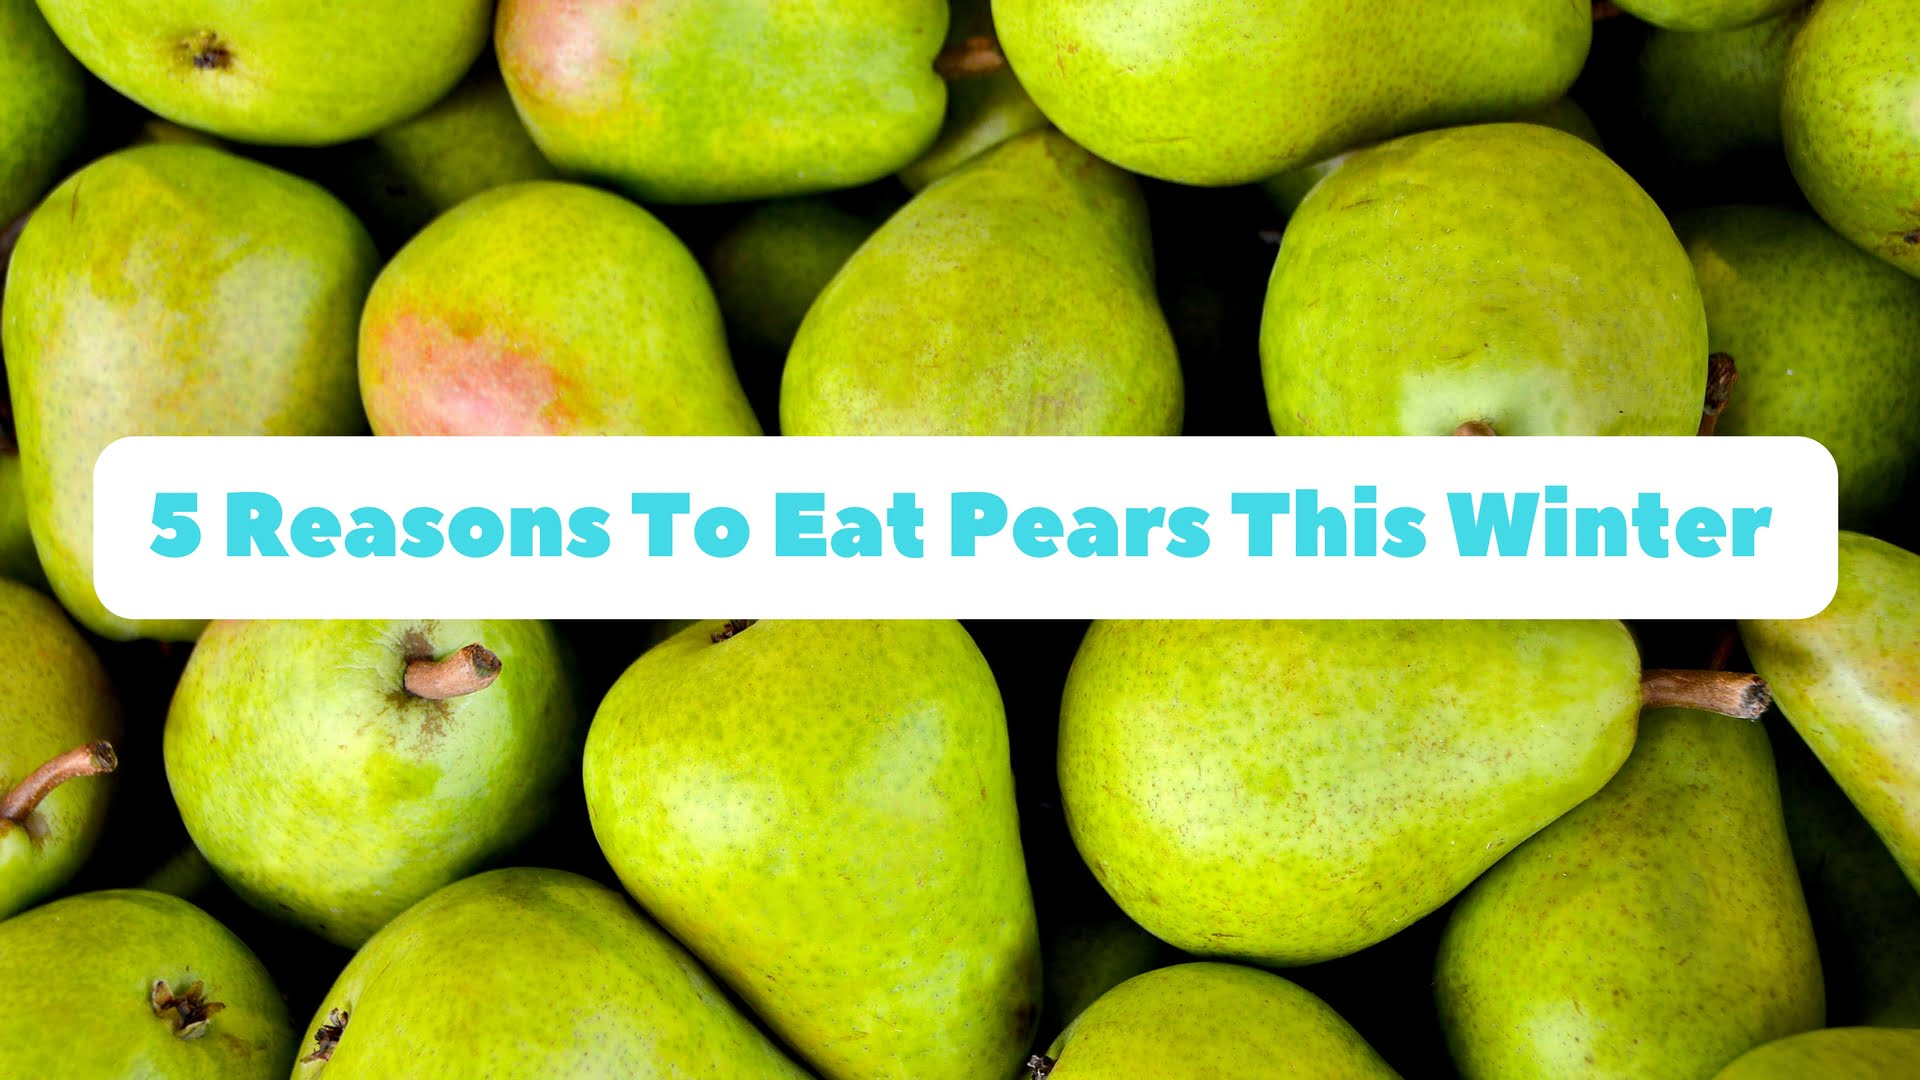 5 Reasons To Eat Pears This Winter